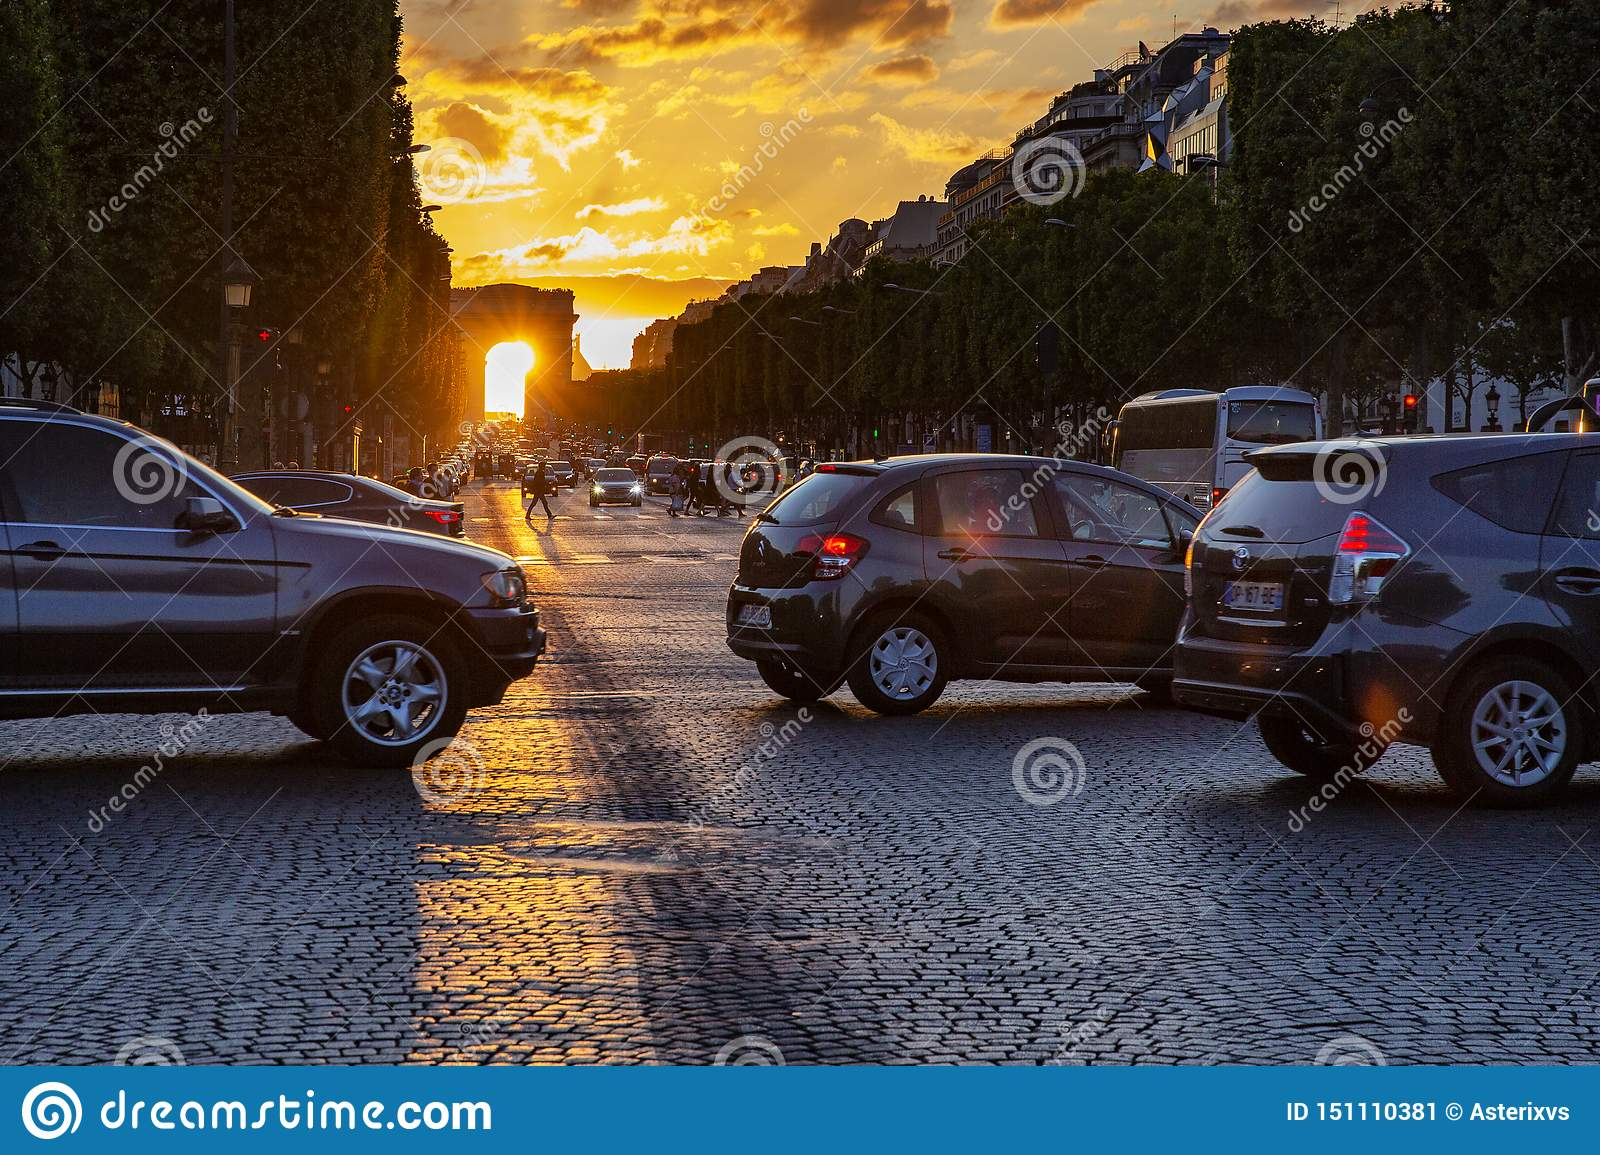 Sunset Champs Elysees